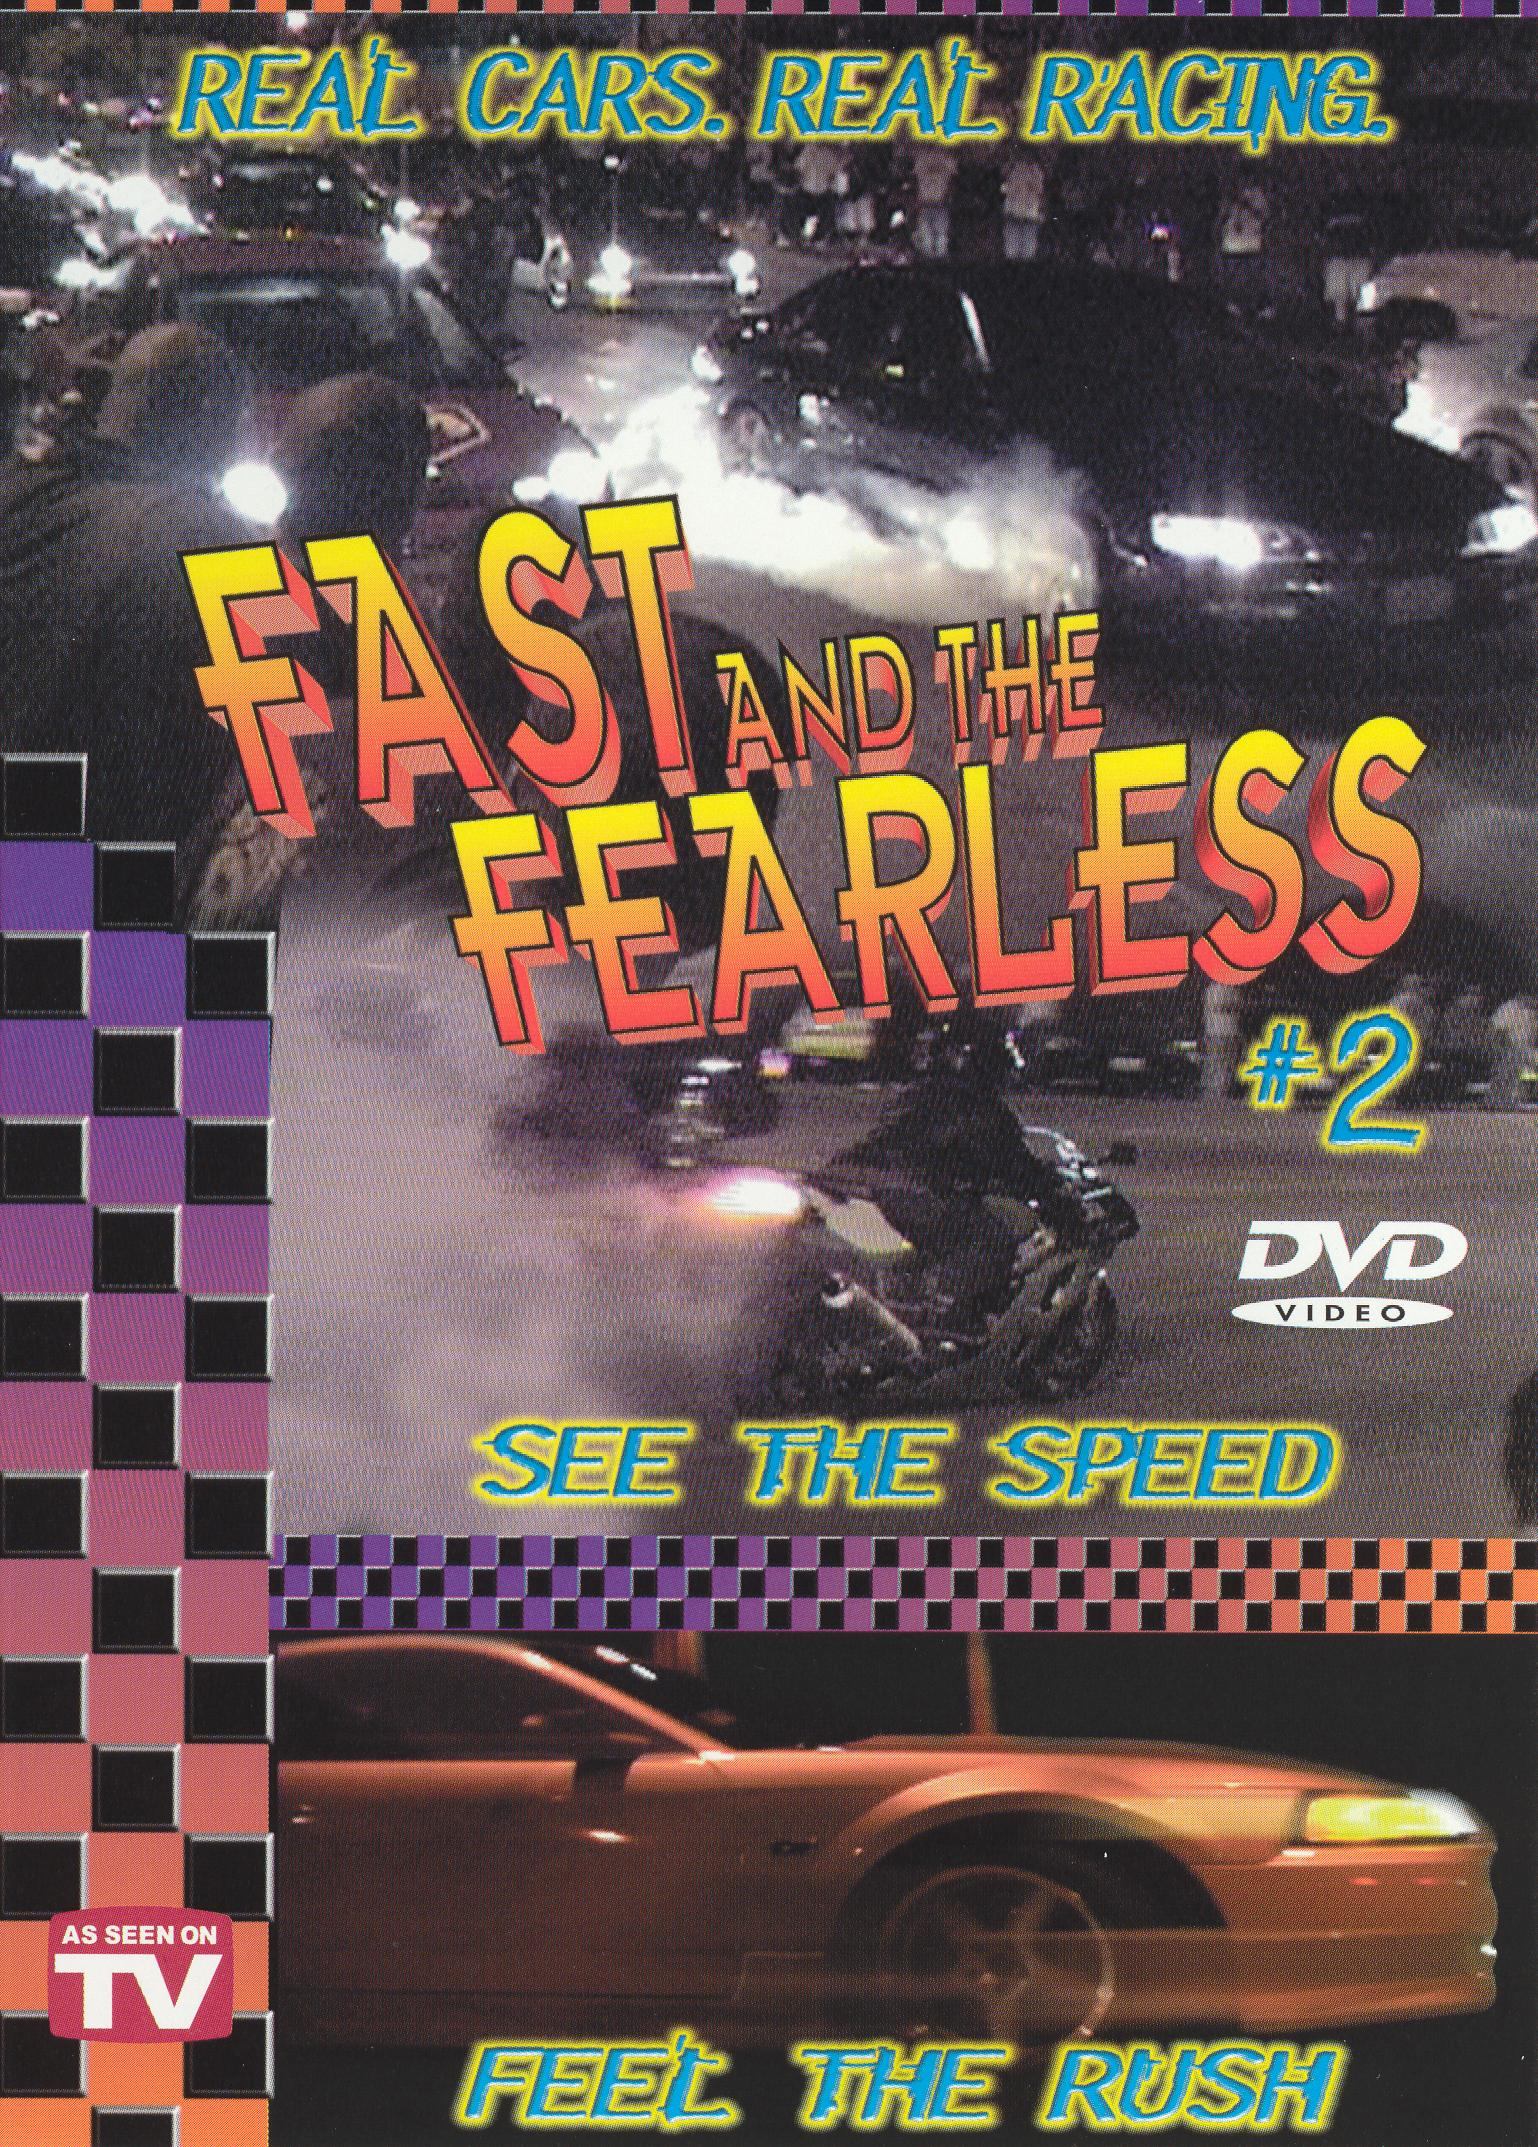 Fast and the Fearless, Vol. 2